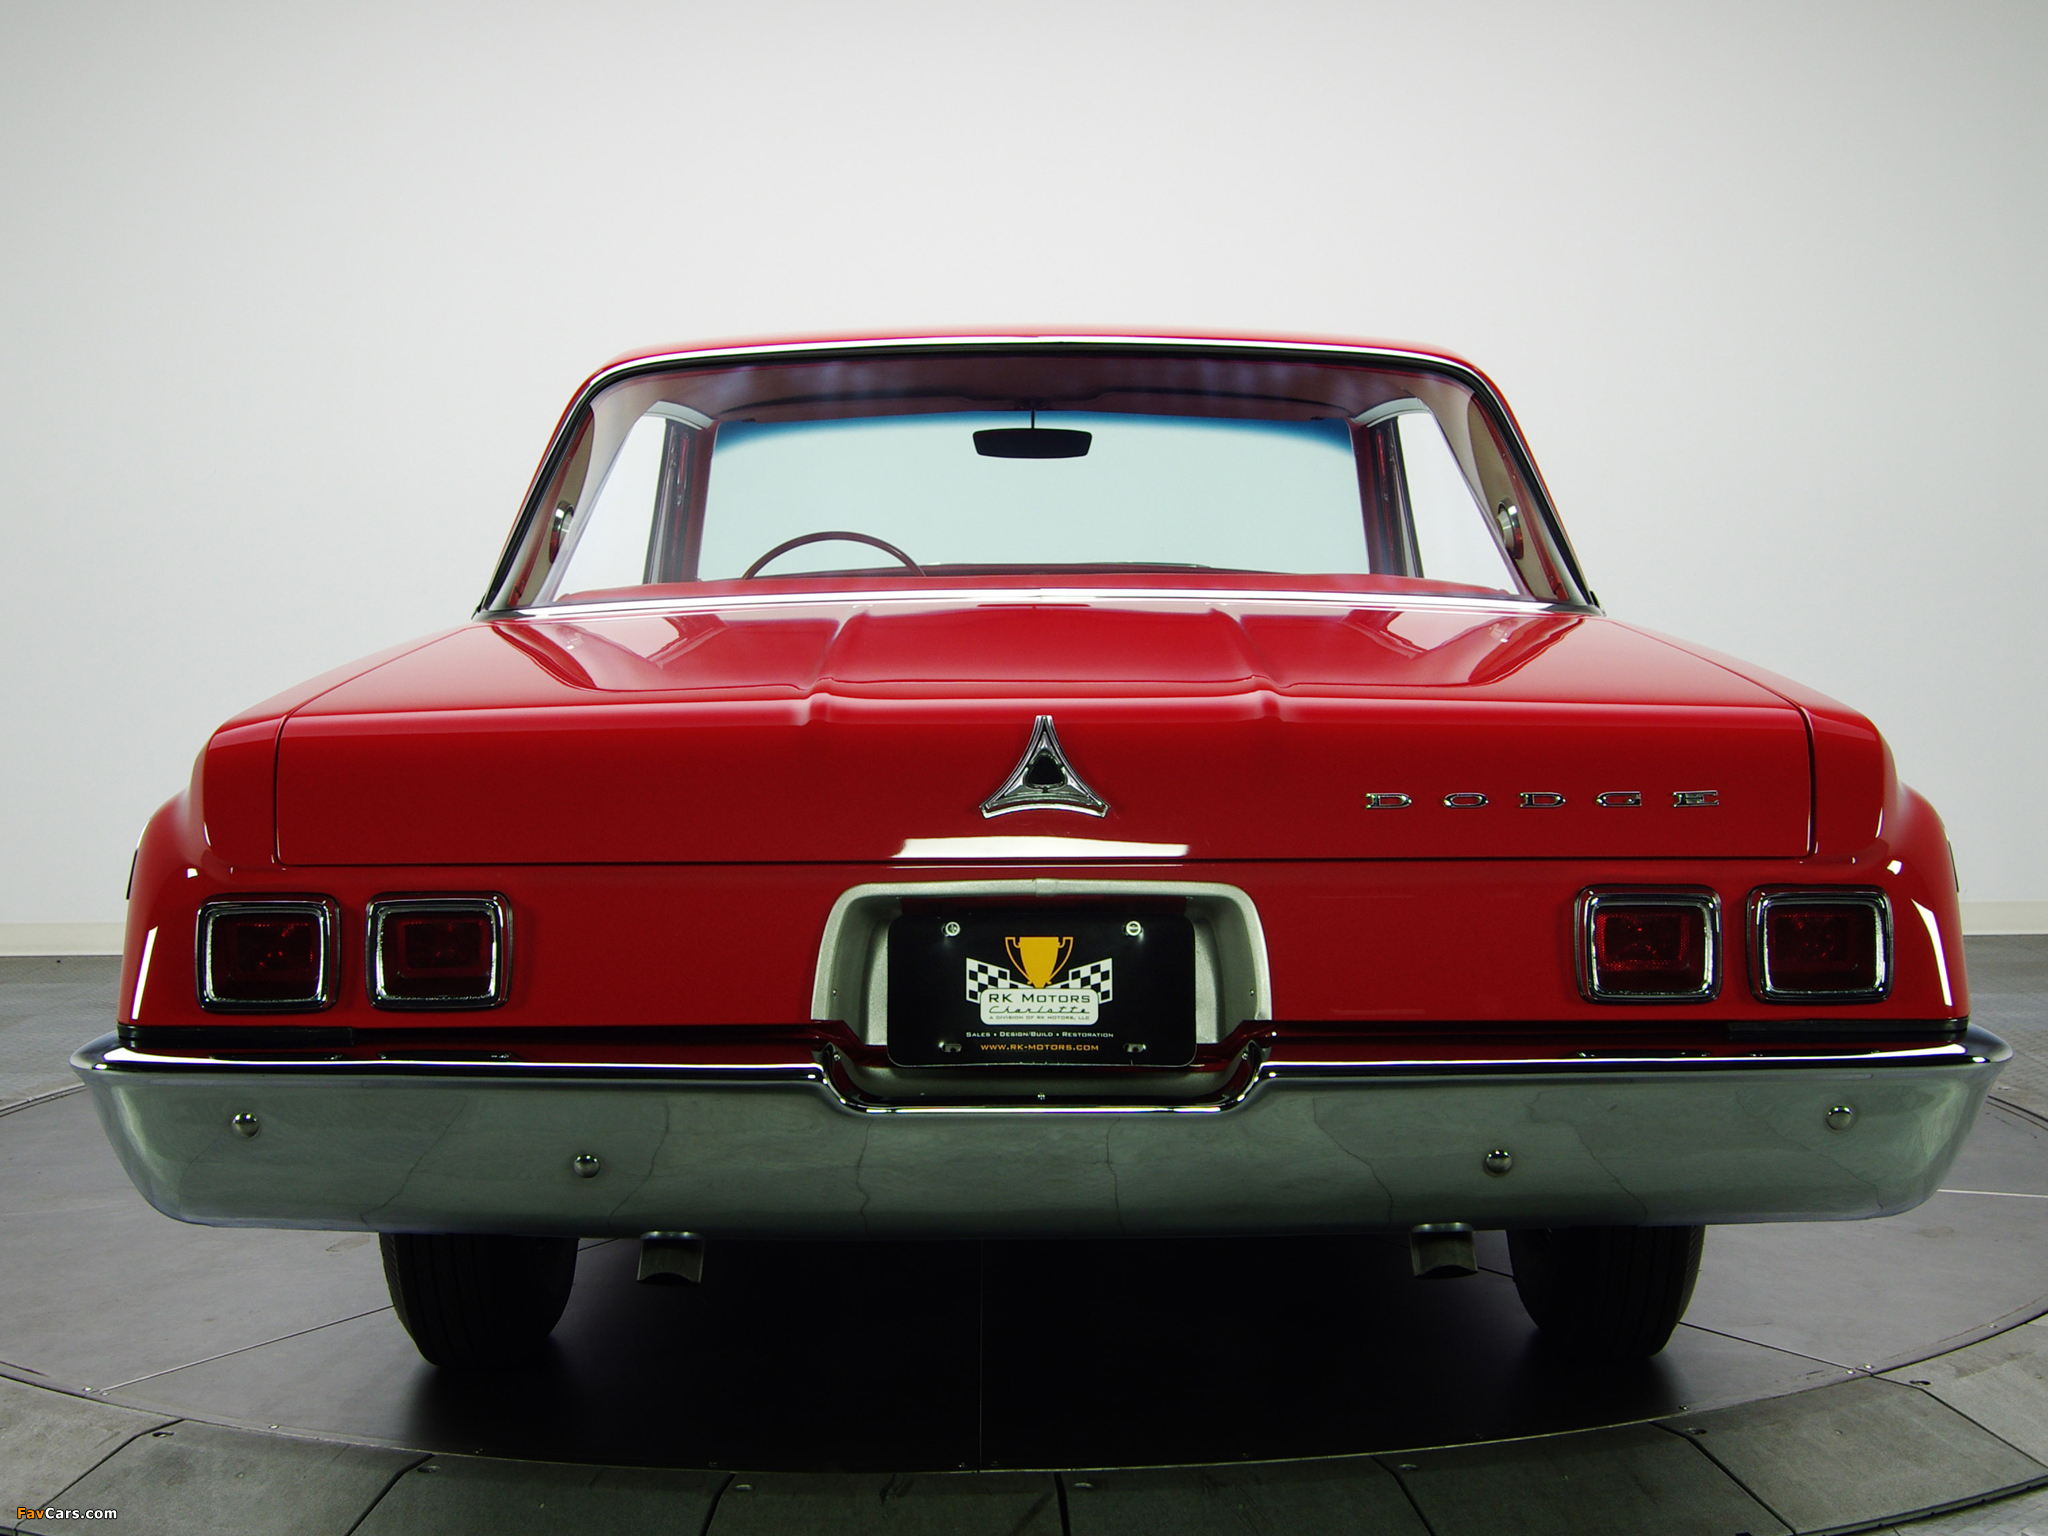 Images of Dodge 440 Street Wedge (622) 1964 (2048 x 1536)